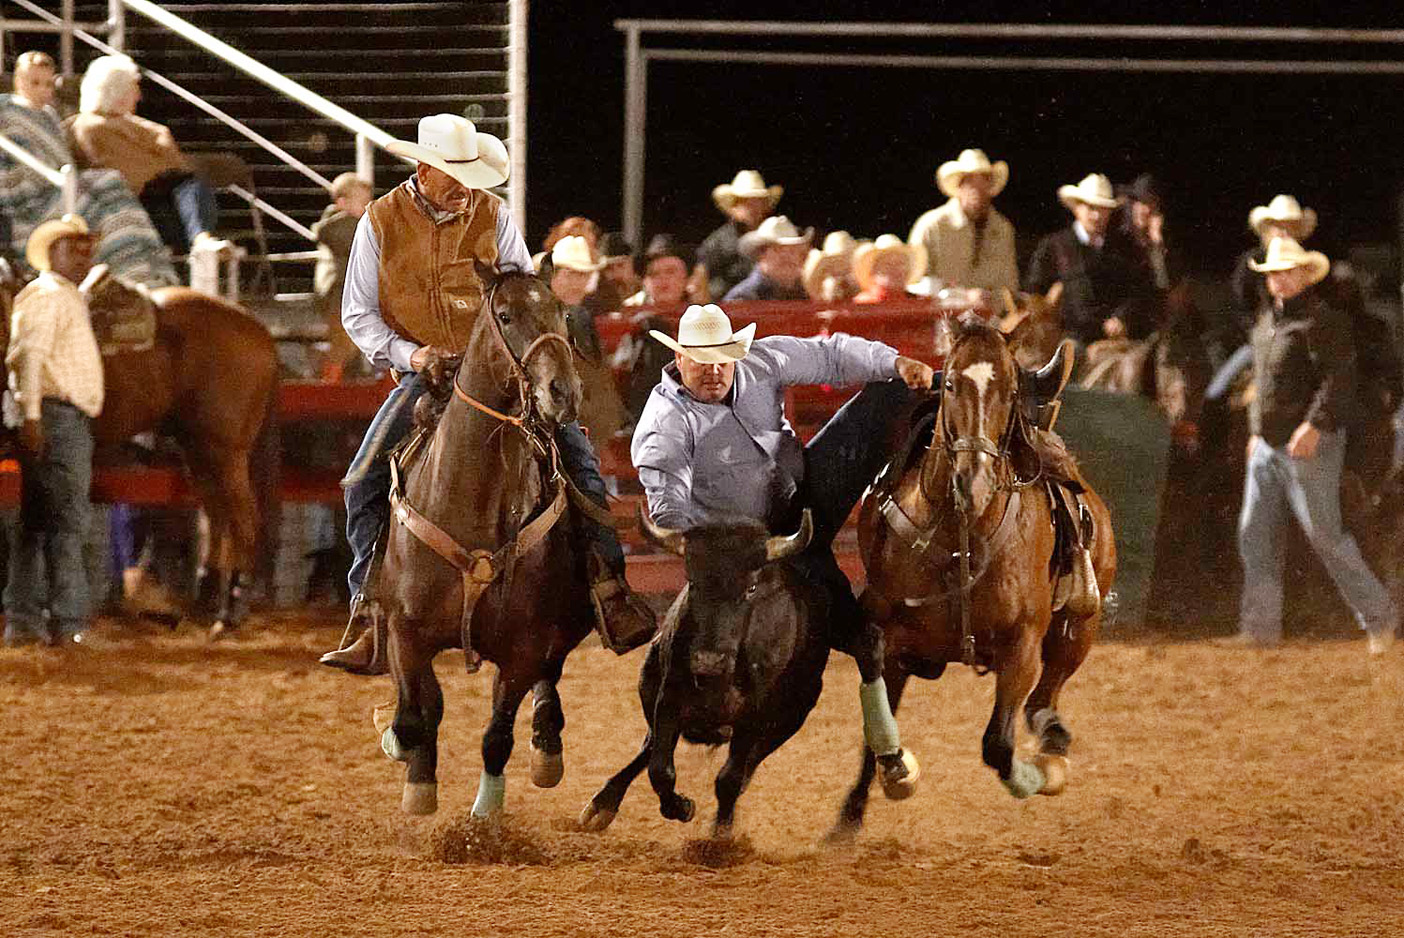 Dennis Gee hazes for son Mickey in the 2011 Pioneer Reunion steer wrestling competition. Dennis and Mickey Gee are from Dean. (Photo by Russell Orrell)